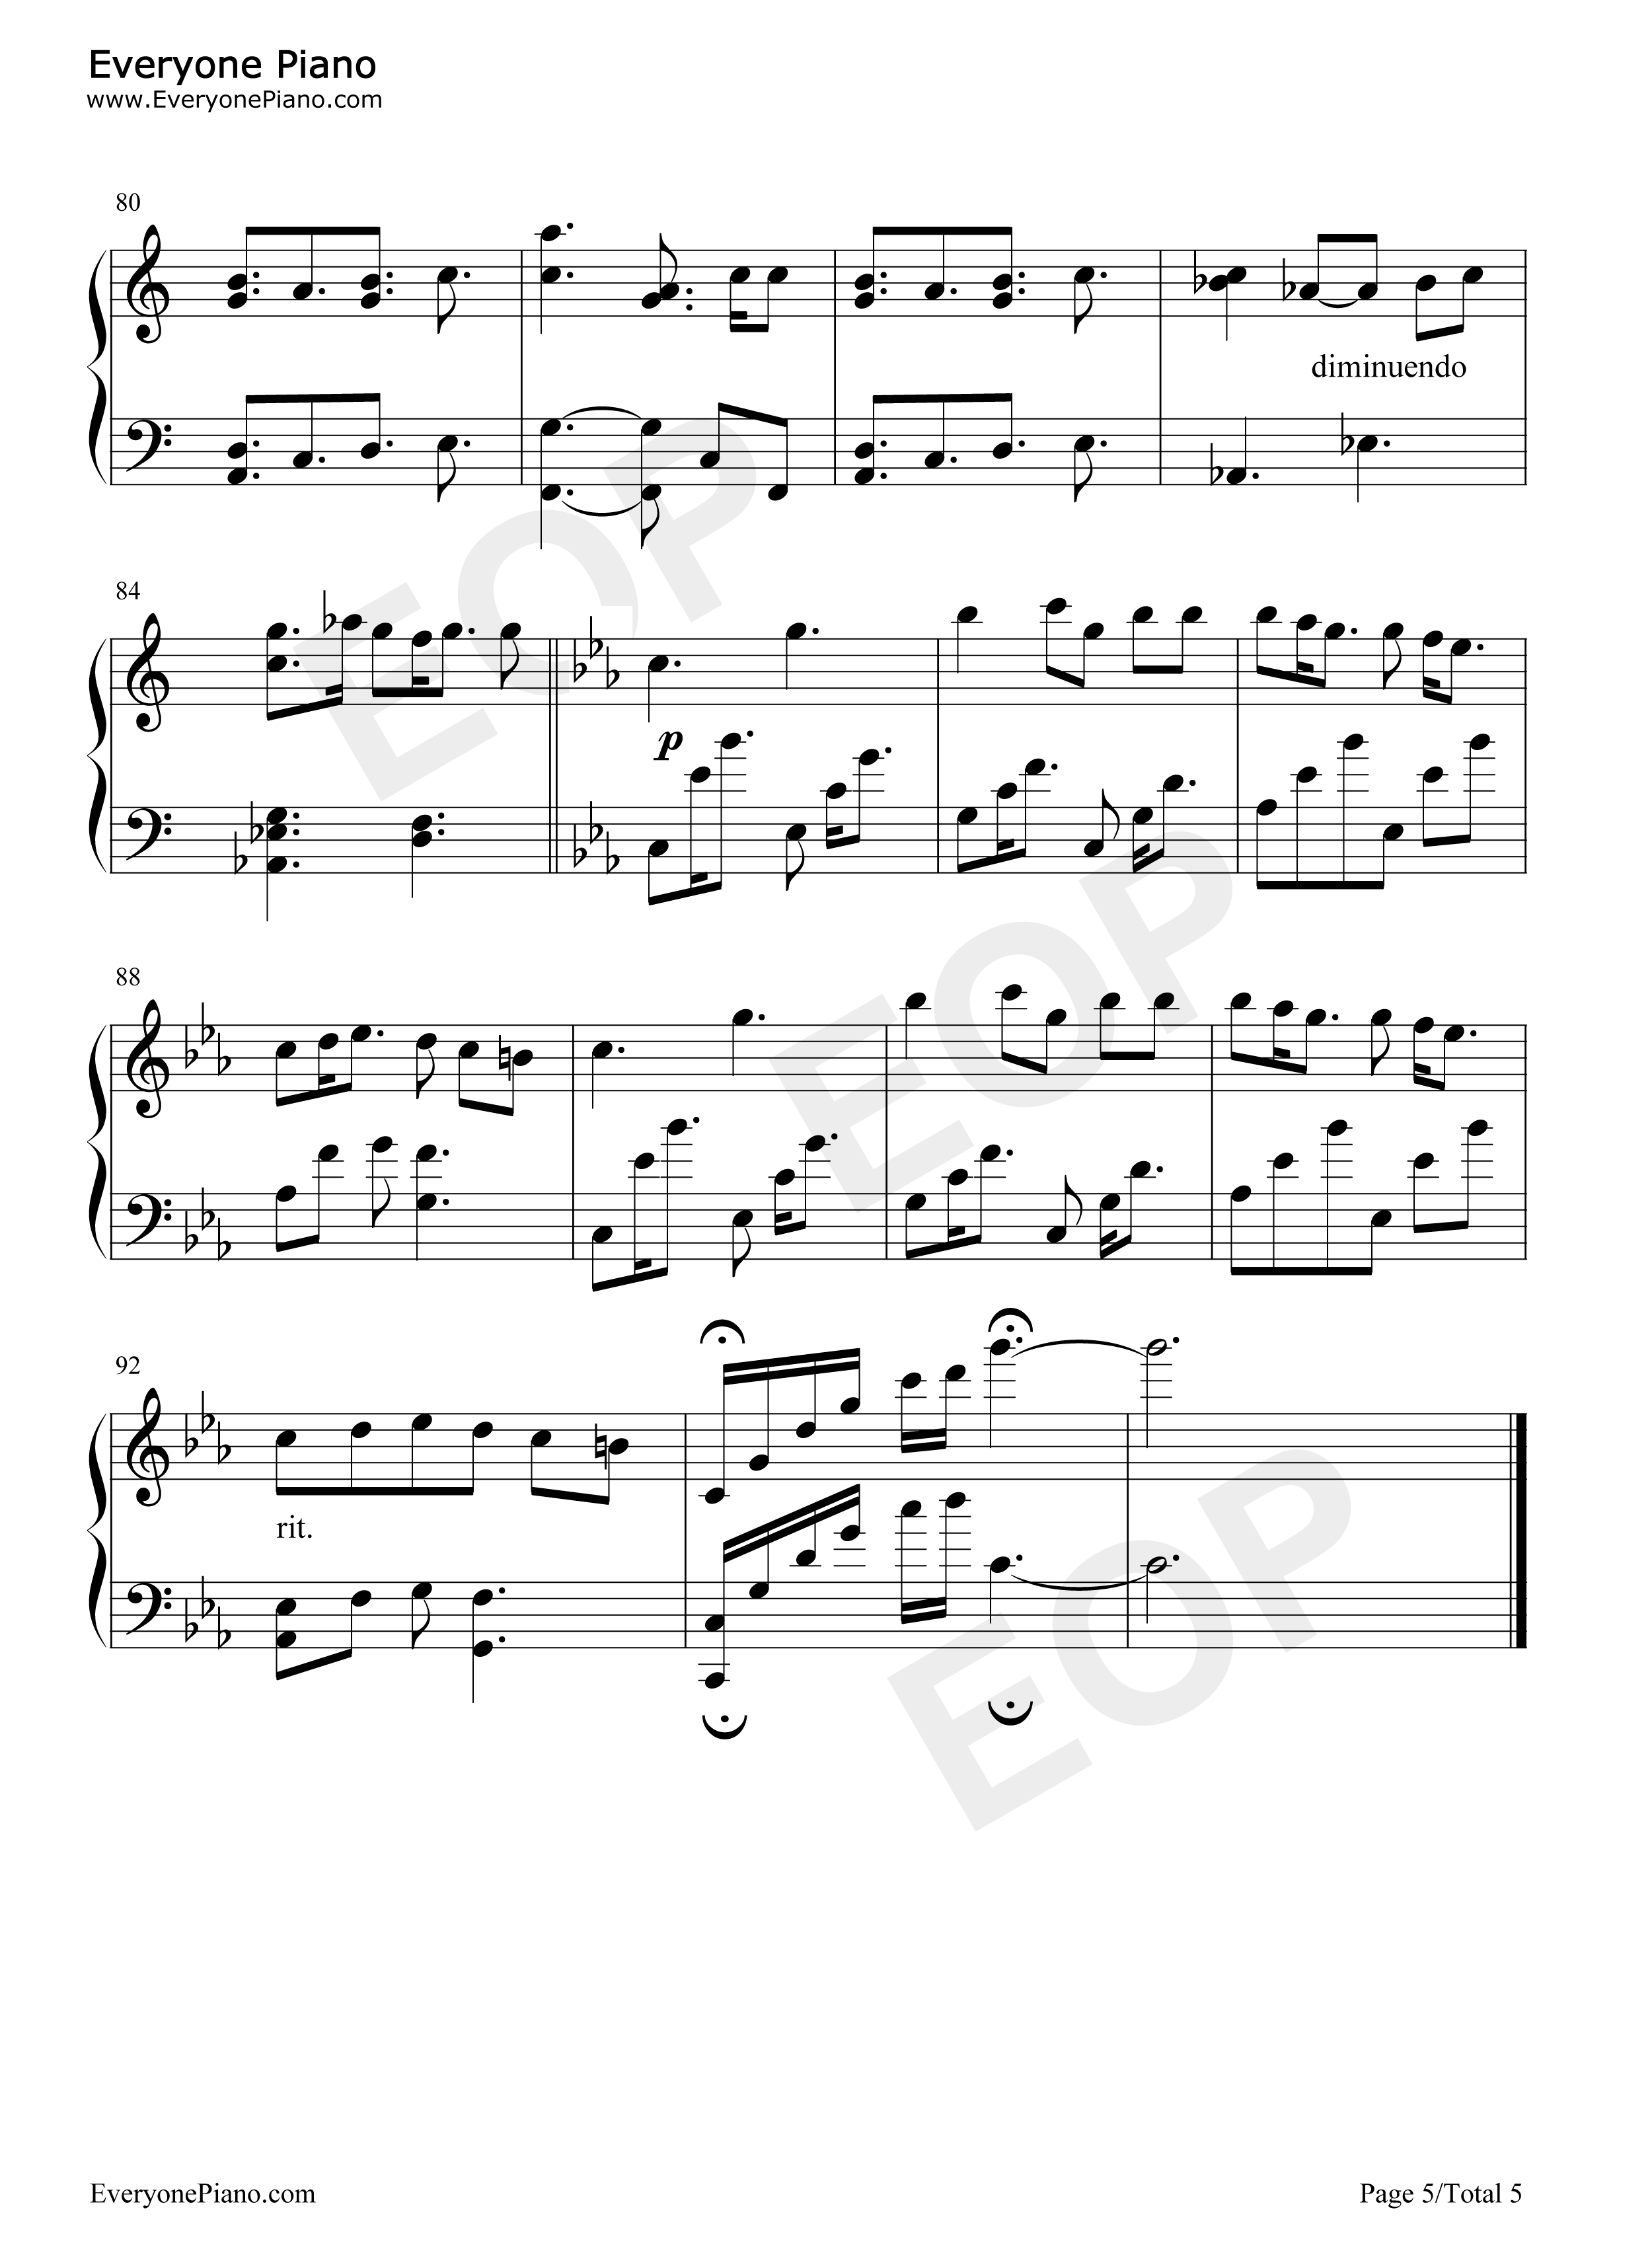 Only hope sheet music download free in PDF or MIDI